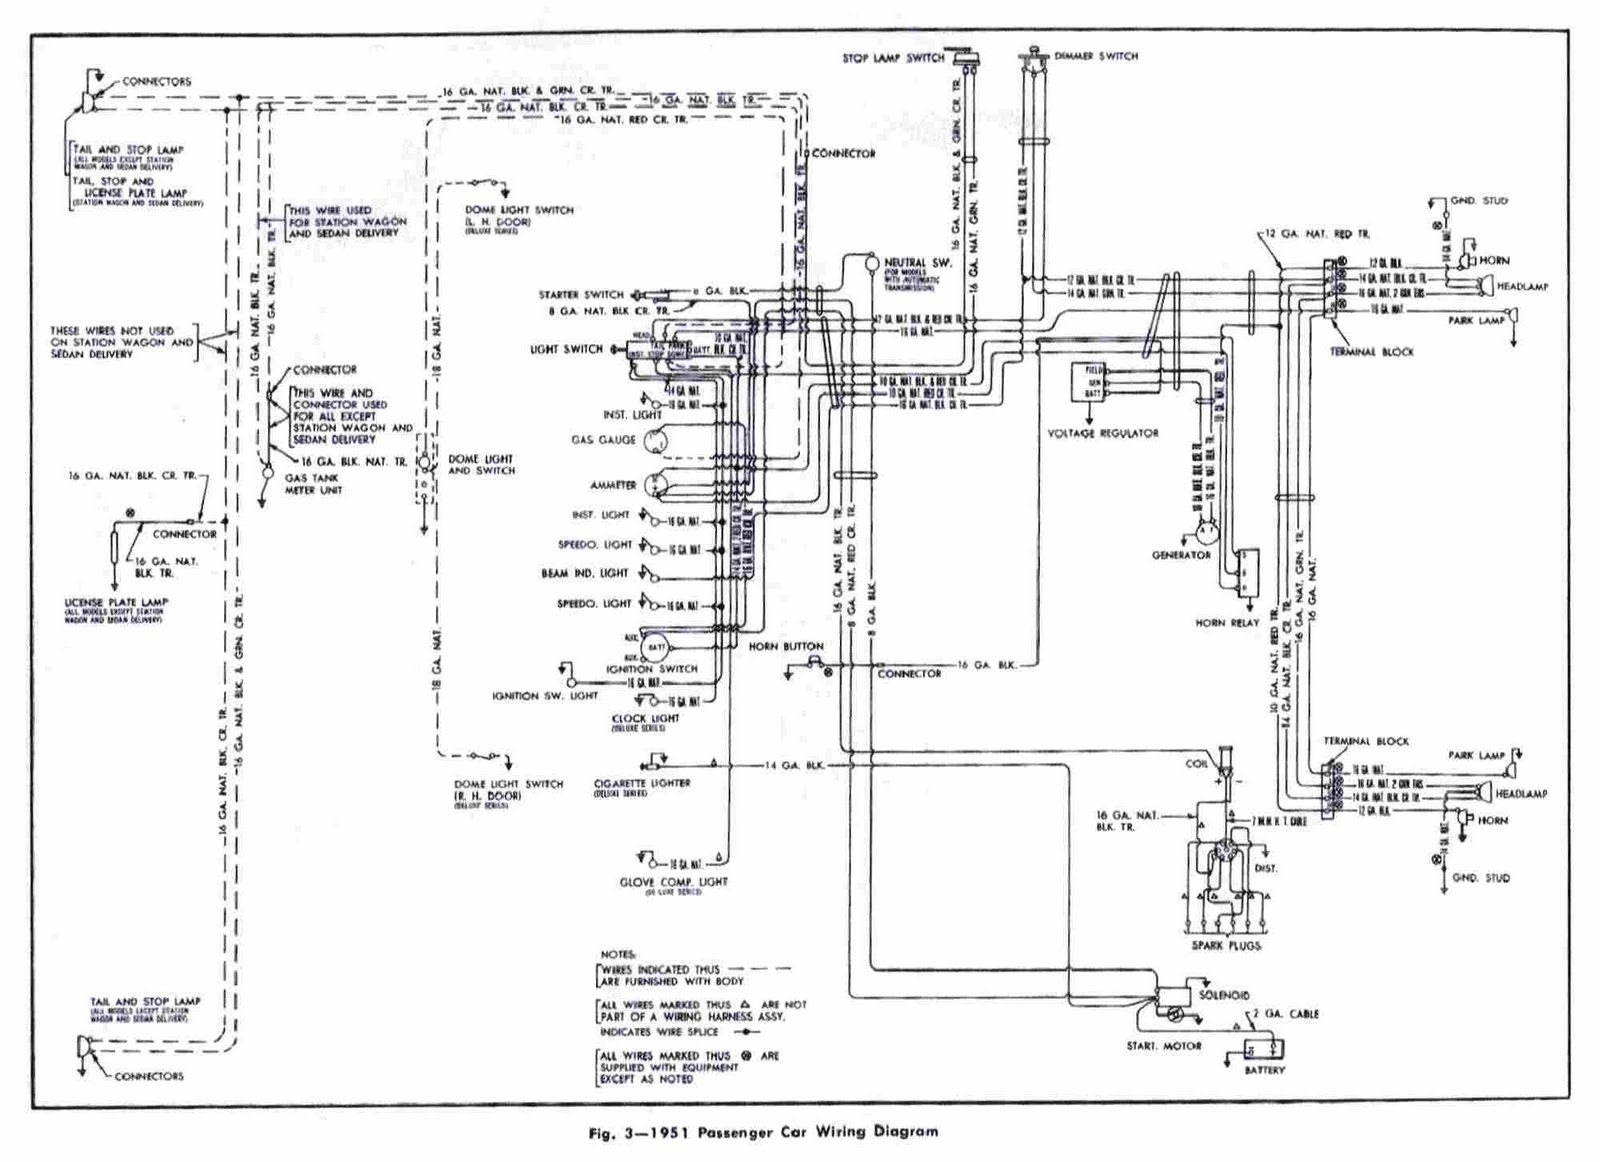 Chevrolet Passenger Car Wiring Diagram on electric scooter wiring schematic